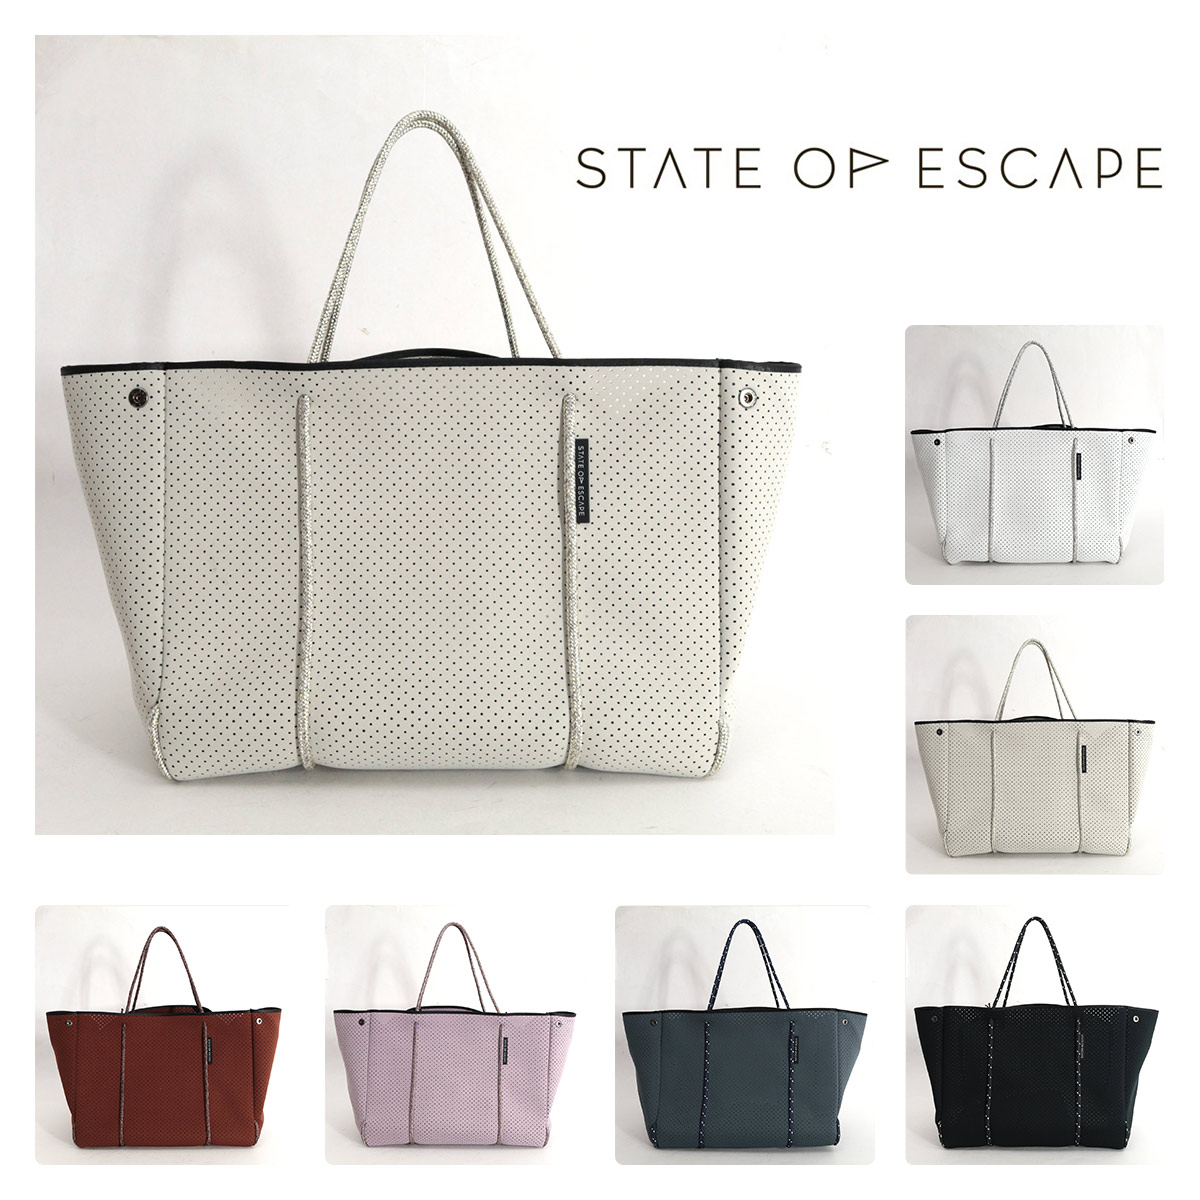 STATE OF ESCAPE ESCAPE CARRYALL トートバッグ